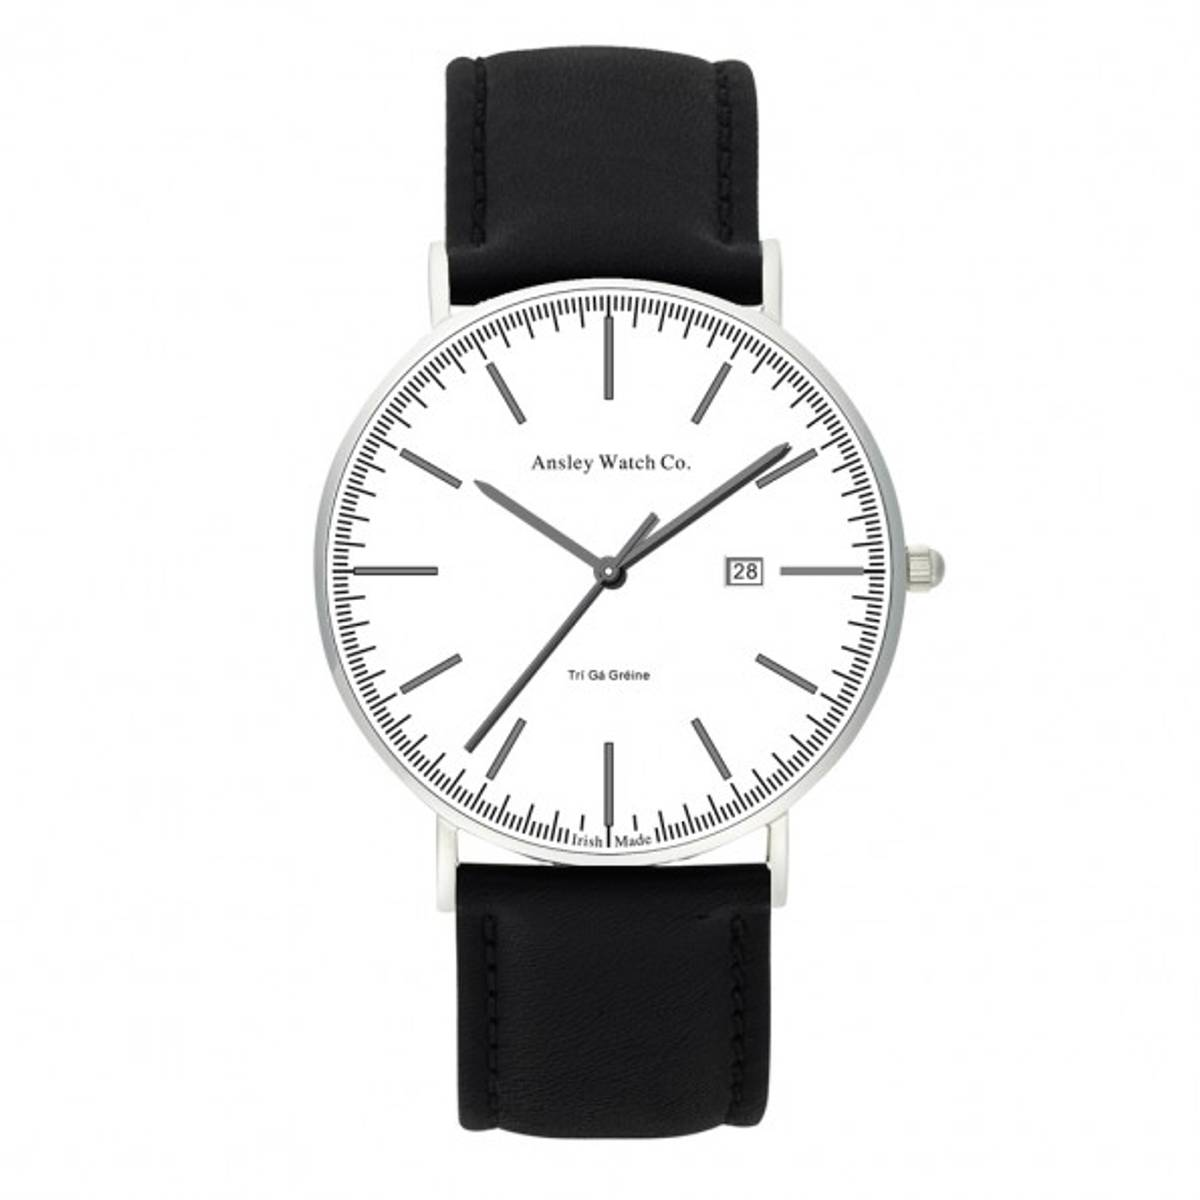 Ansley 234Ansley 23442mm sapphire glass3 ATMCitizen GM10 movementDate functionInterchangeable leather strapAncient Symbol for equality engraved on case backMade in Ireland